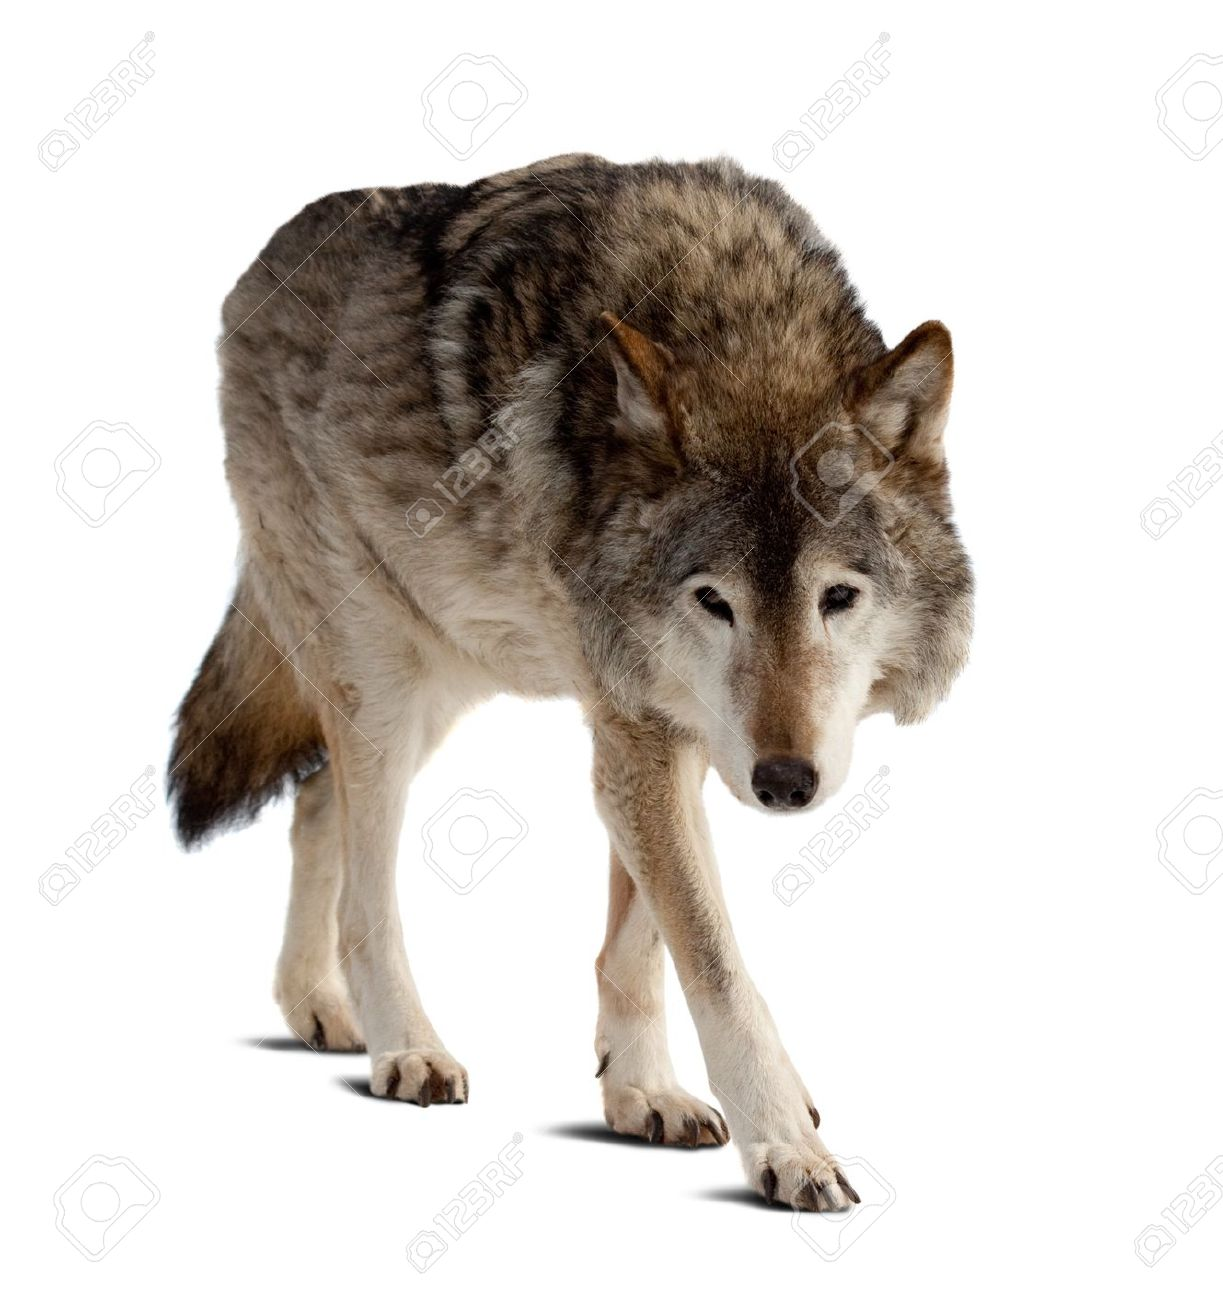 wolf. Isolated over white background with shade Stock Photo - 13086327